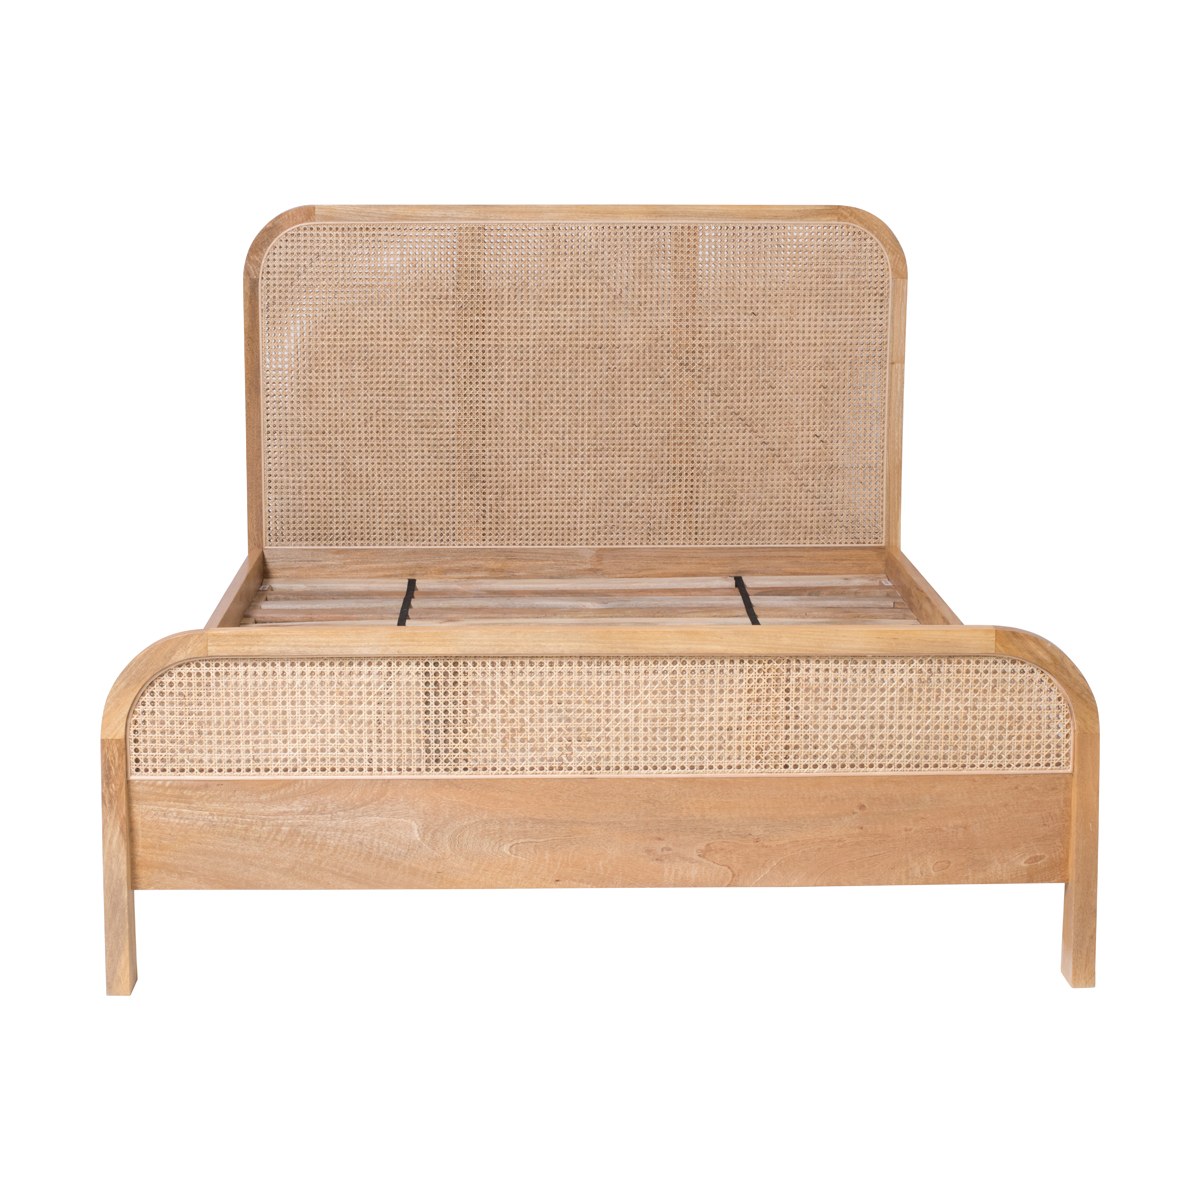 Willow Queen Bed in Mangowood/Clear Lacquer Rattan by OzDesignFurniture, a Beds & Bed Frames for sale on Style Sourcebook